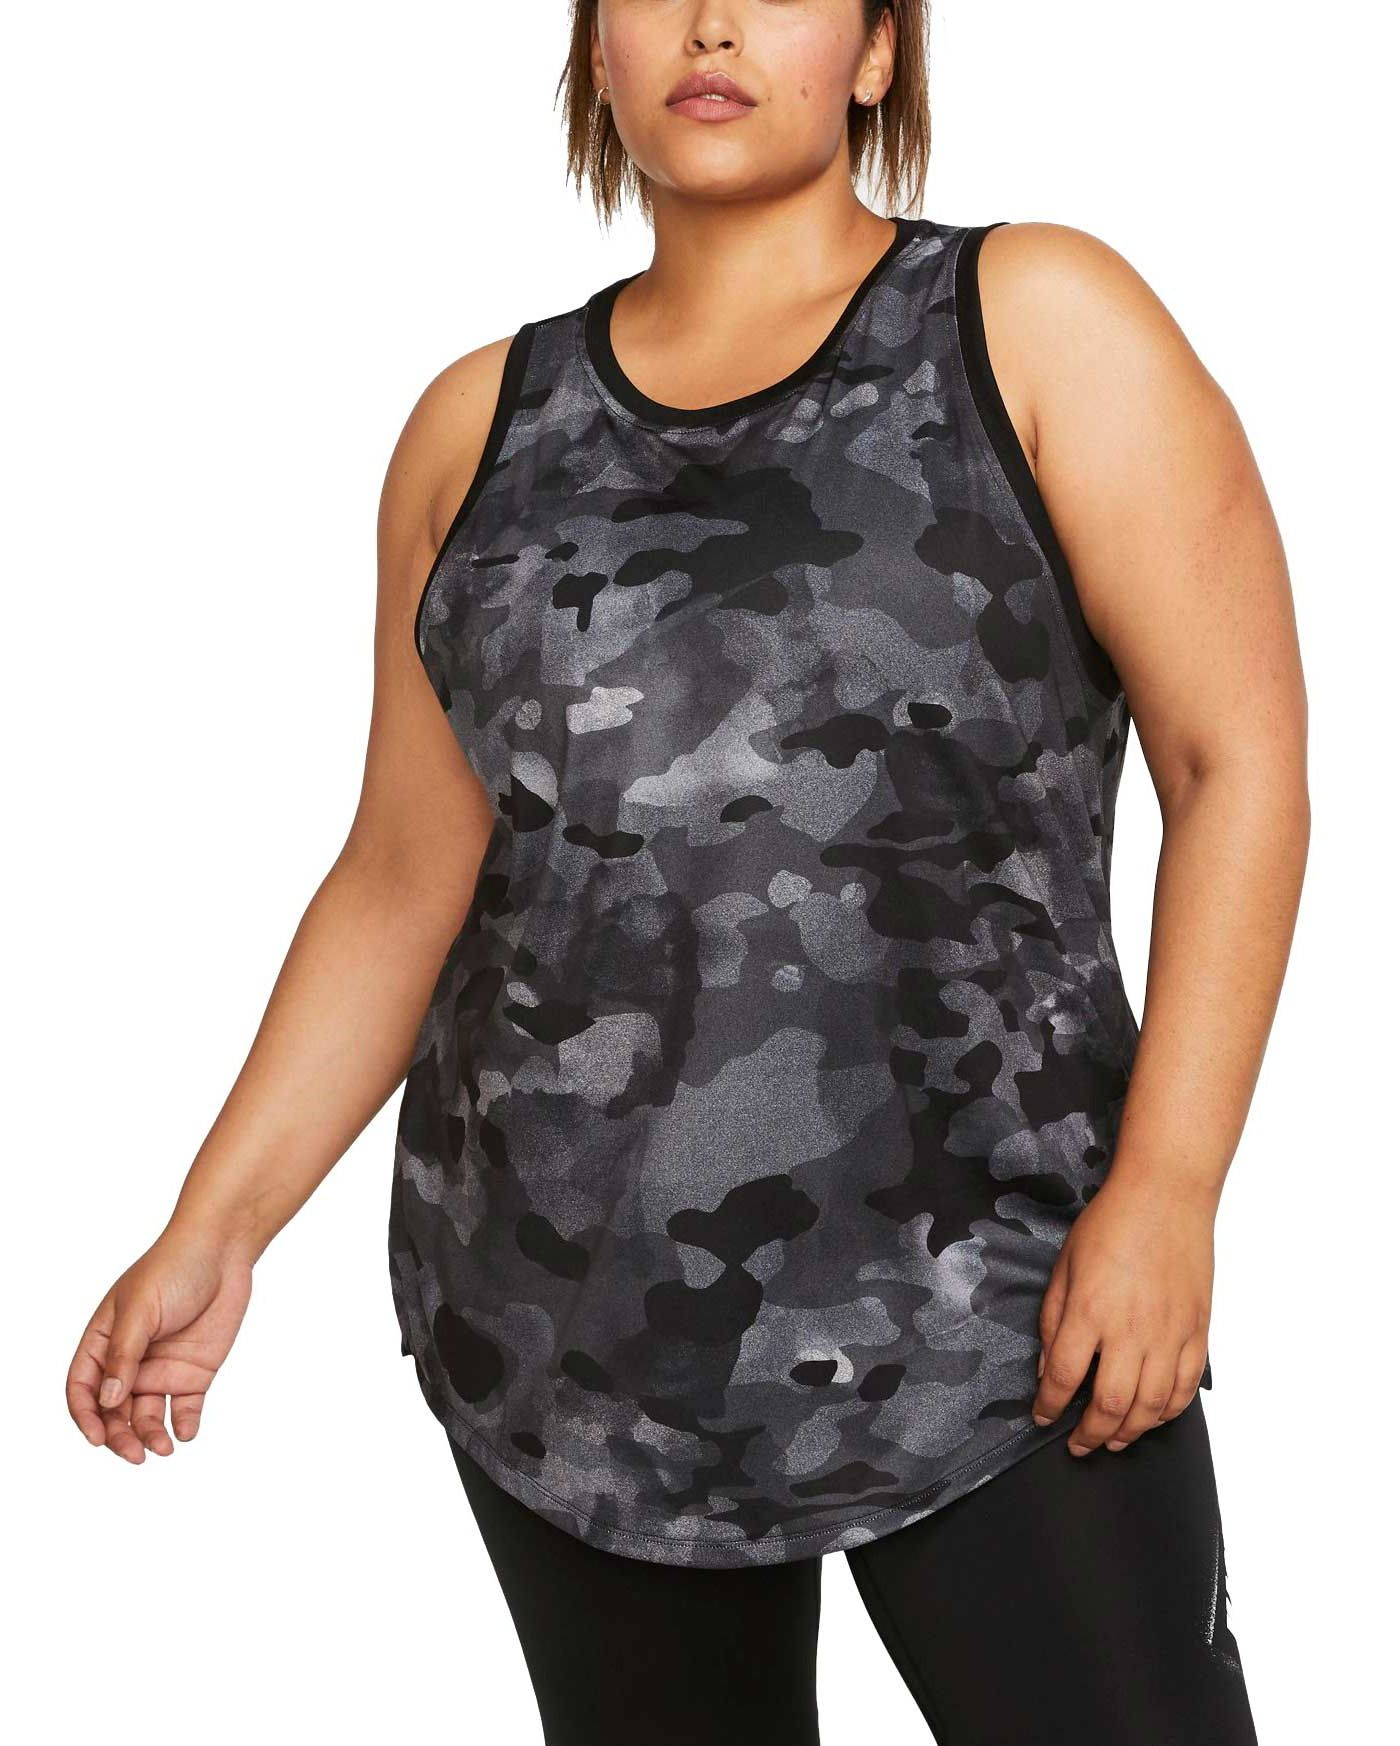 Nike Women's Plus Size Dri-FIT Camo Training Tank Top